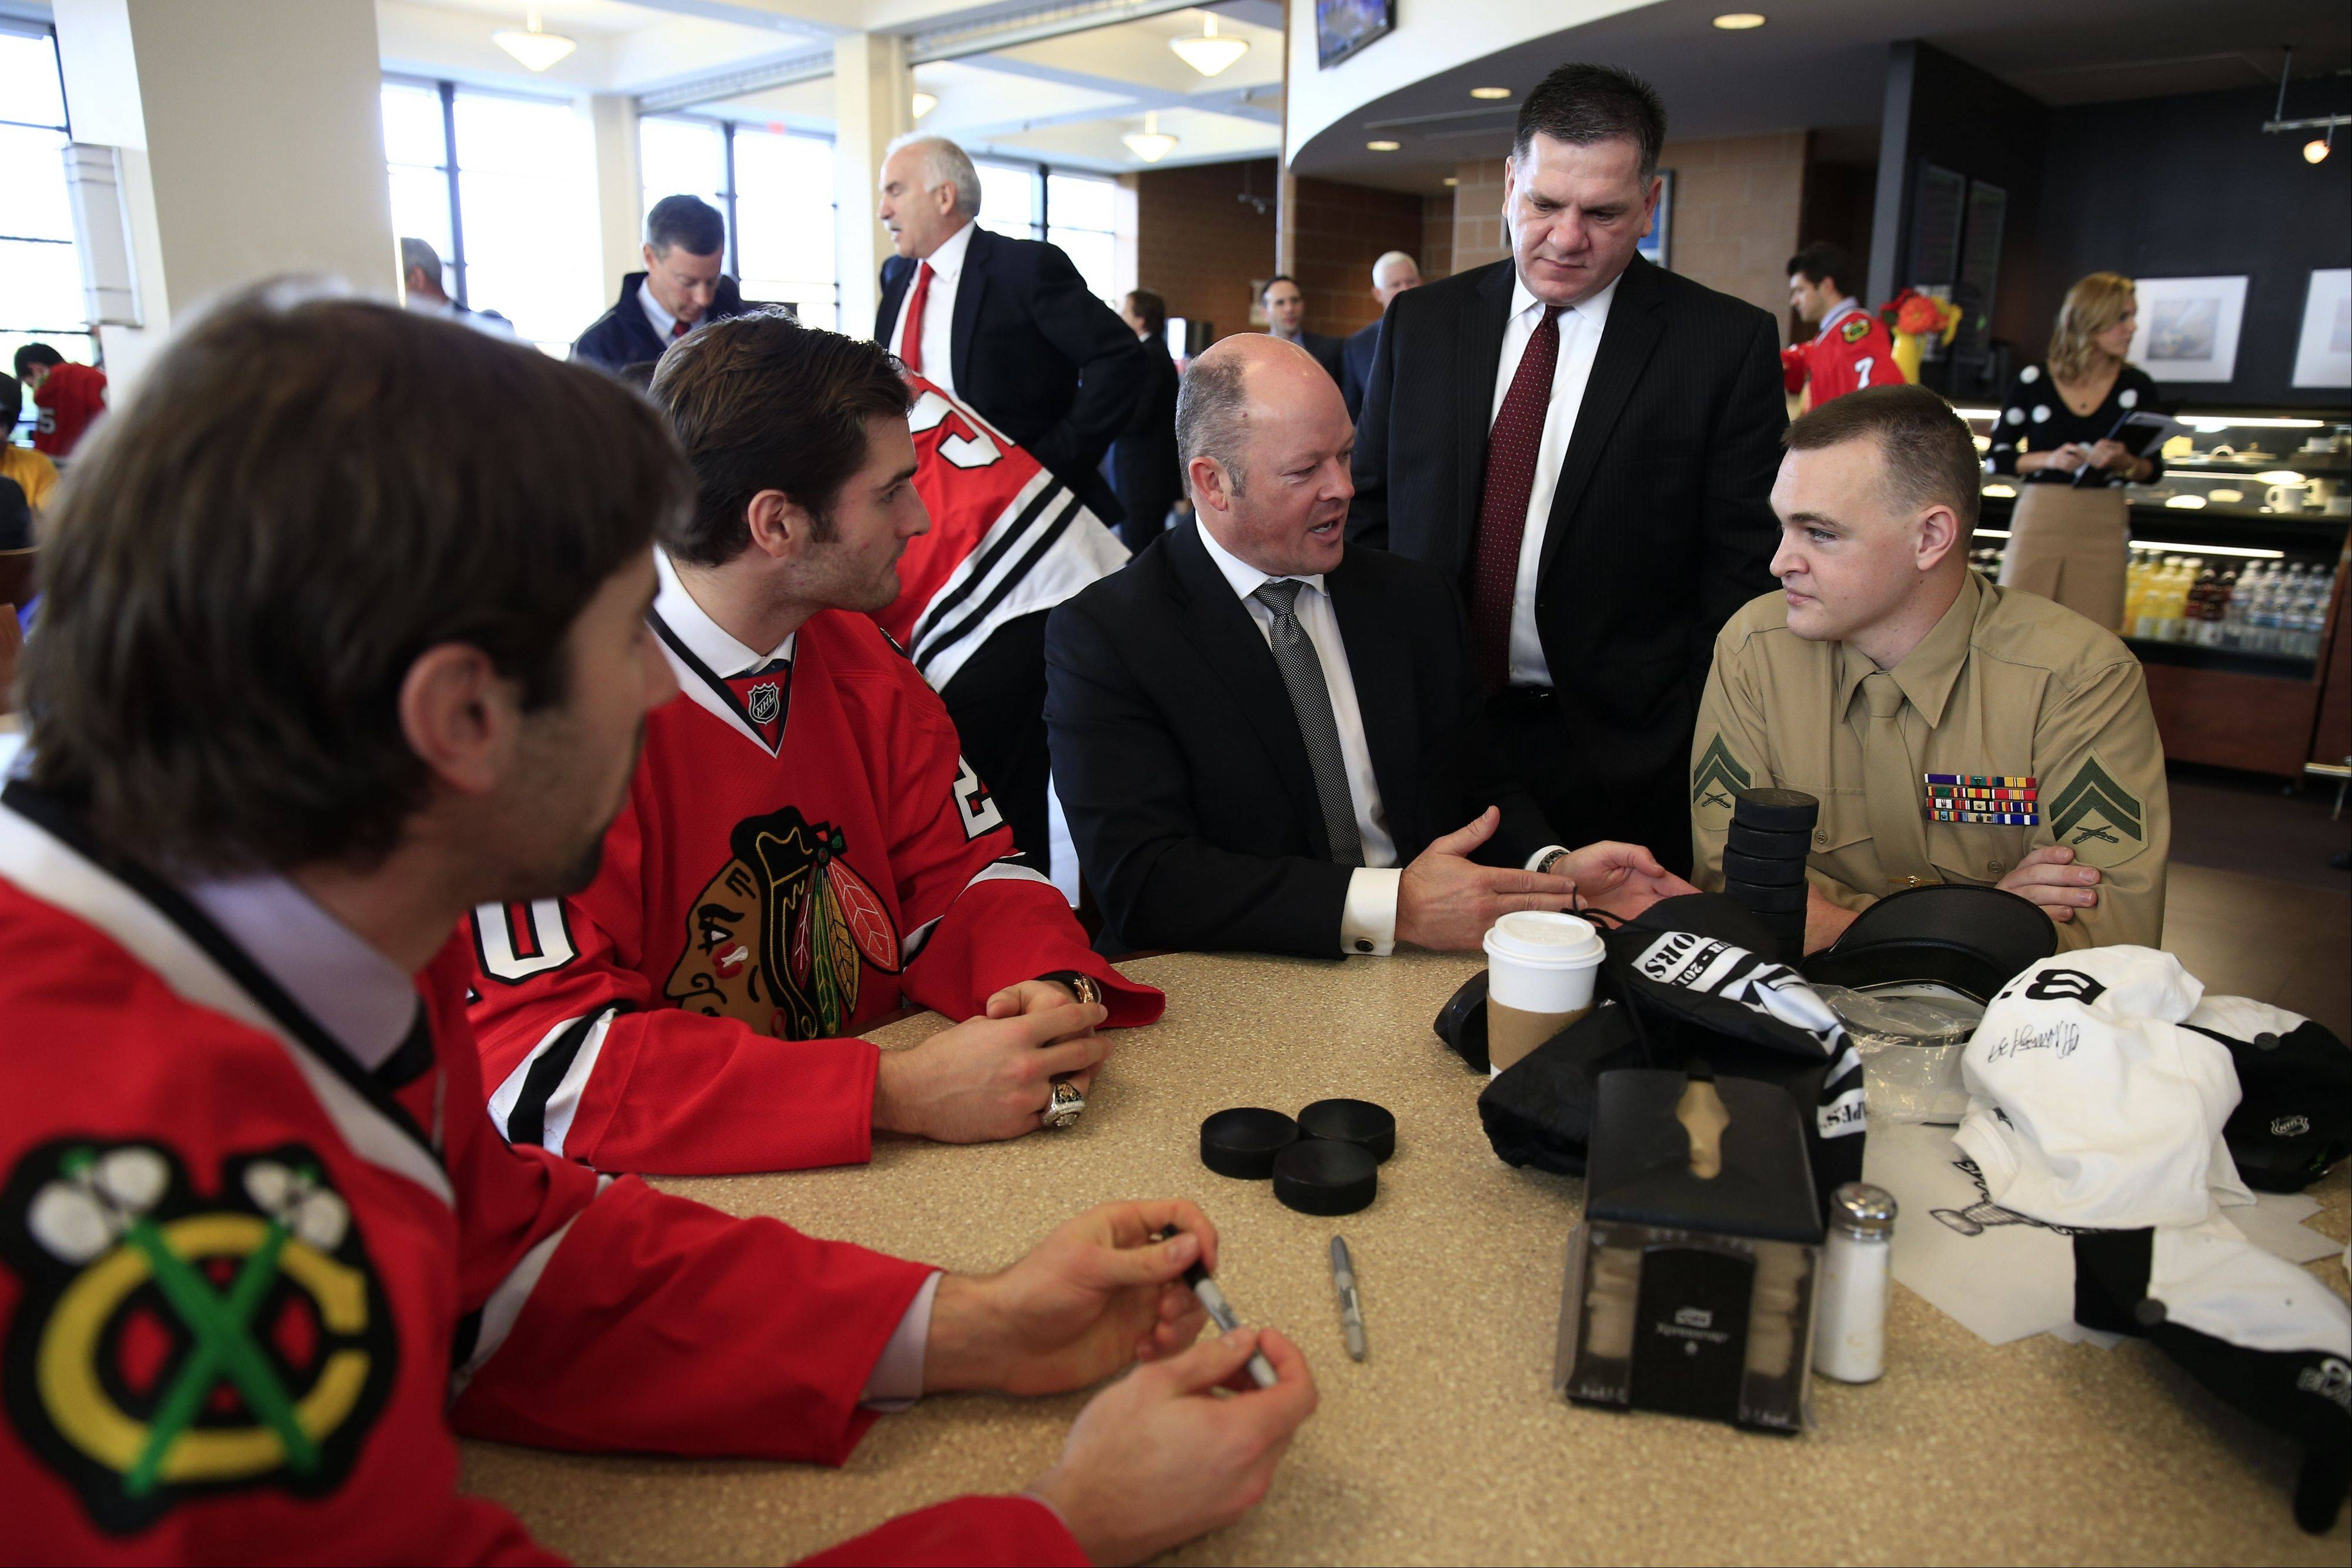 Images from the Blackhawks' visit to Visit Walter Reed National Military Medical Center on Monday